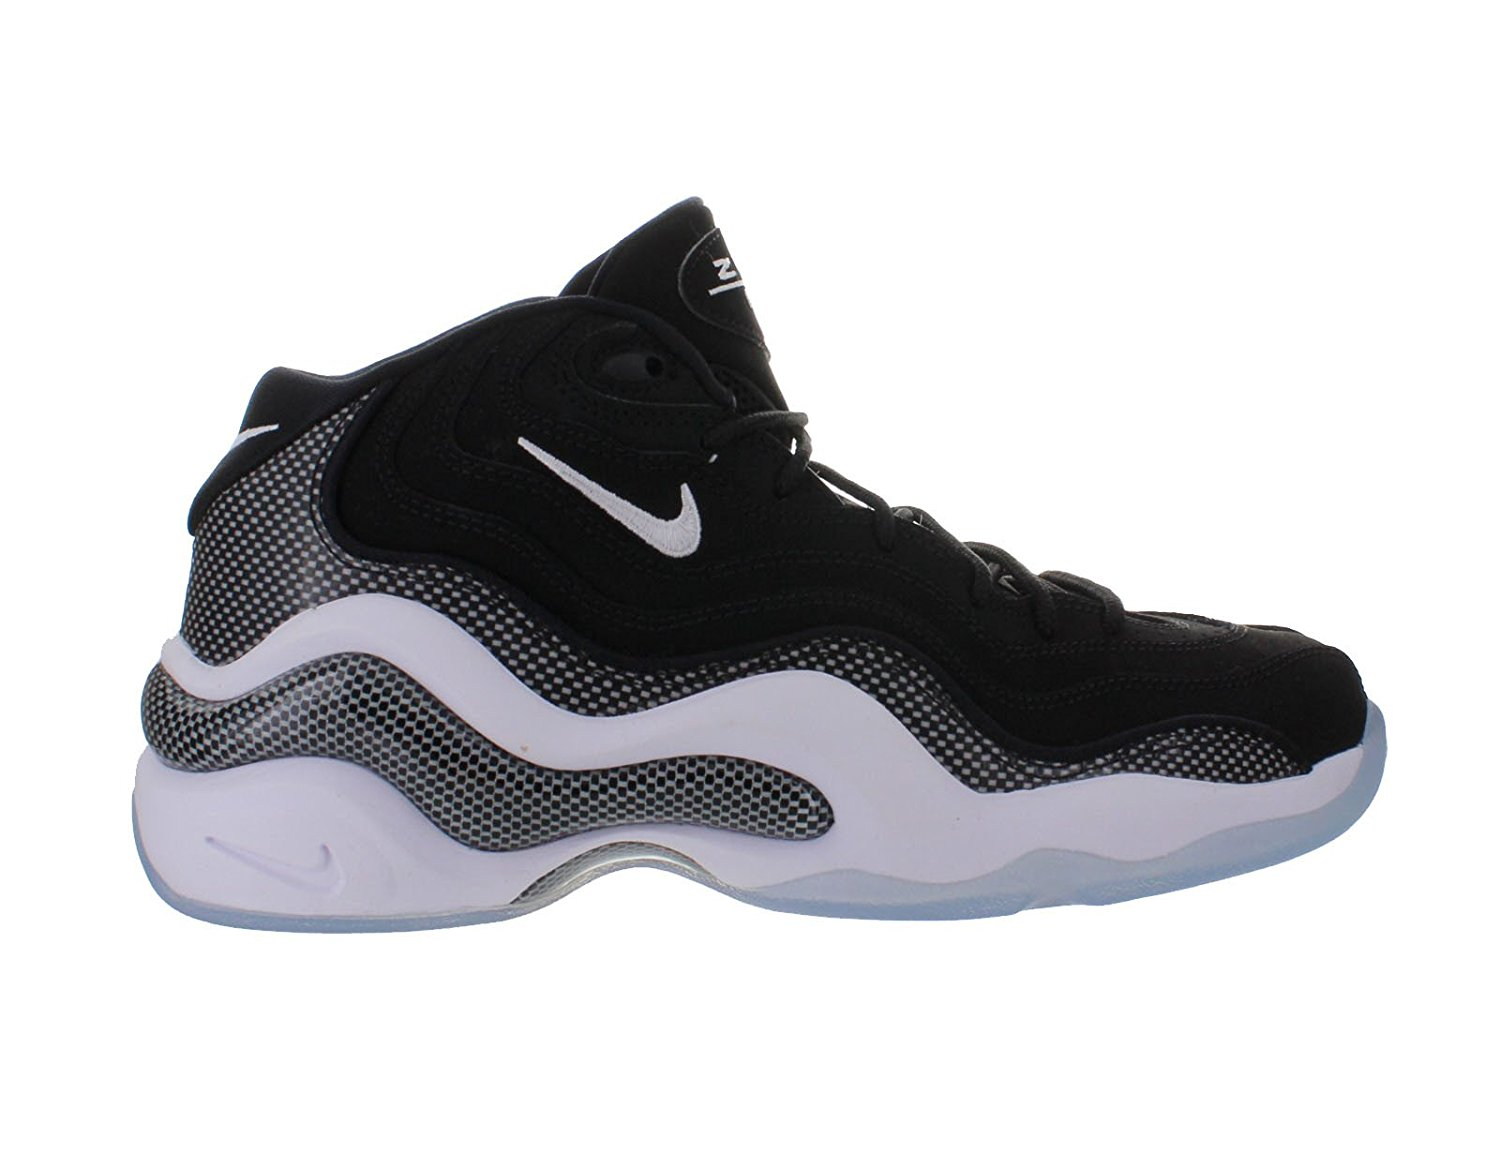 9d336143b7784 Get Quotations · Nike Air Zoom Flight 96 Carbon Fiber Penny Black White US 8